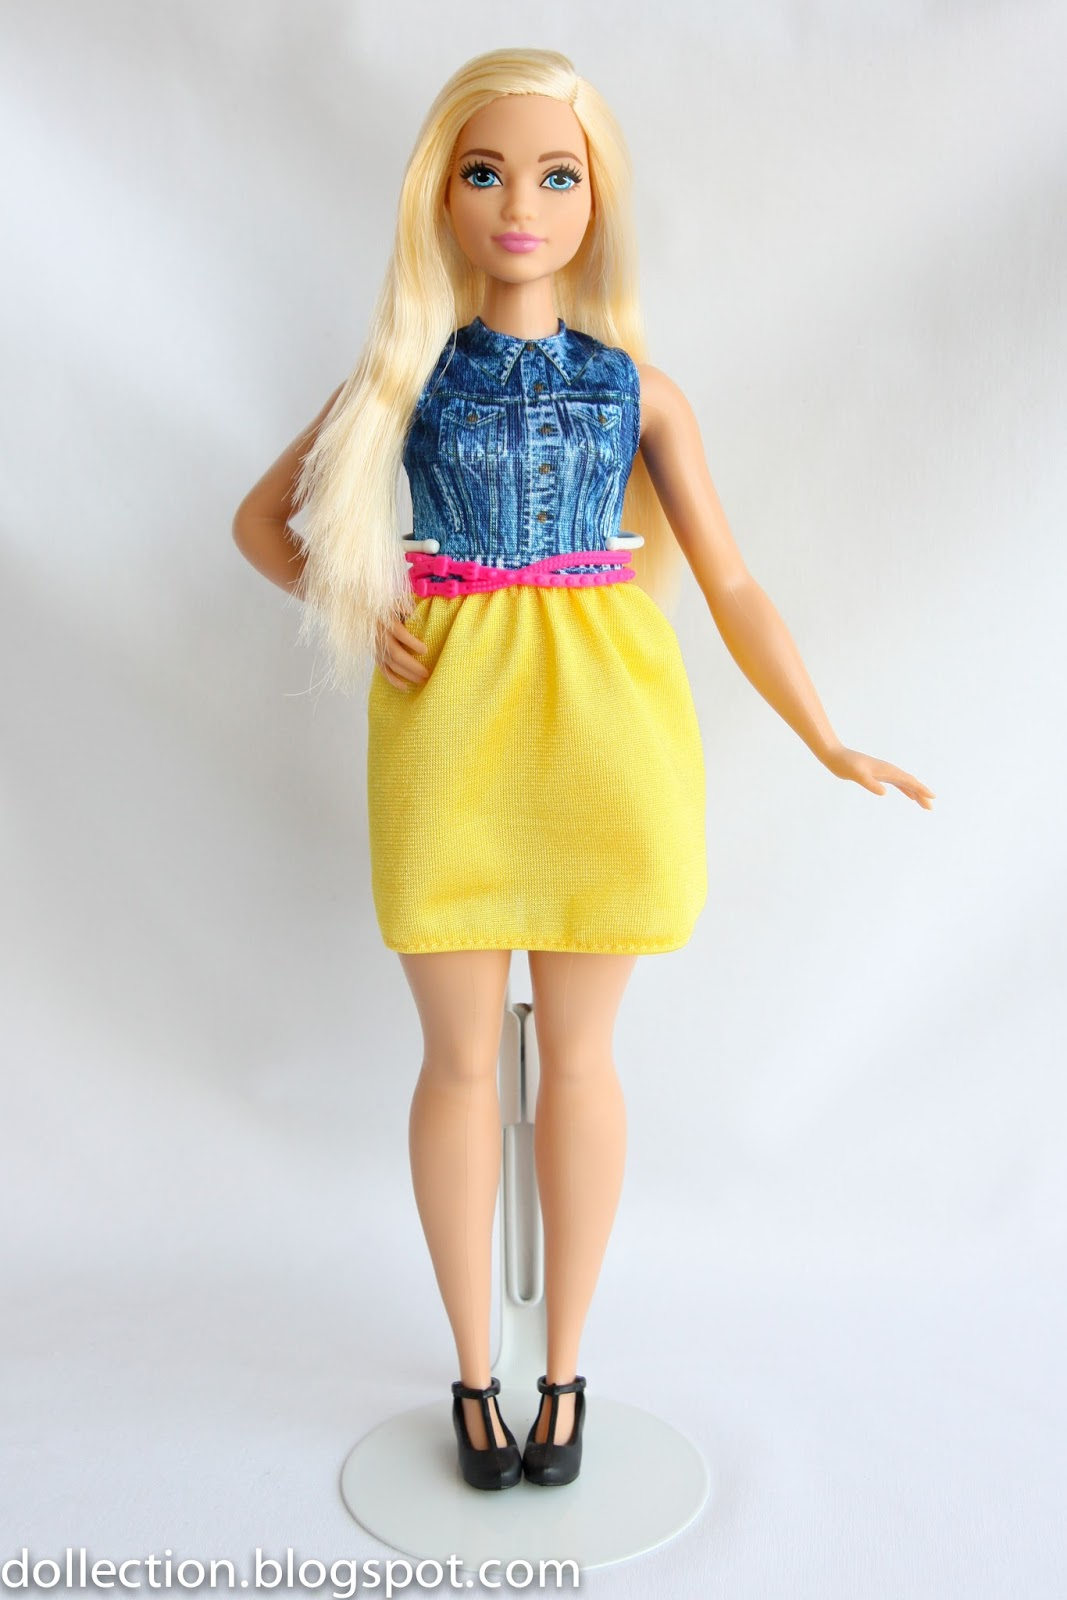 Margaret Ann Dolls Review 48 Barbie Fashionistas Doll 22 Chambray Chic Curvy